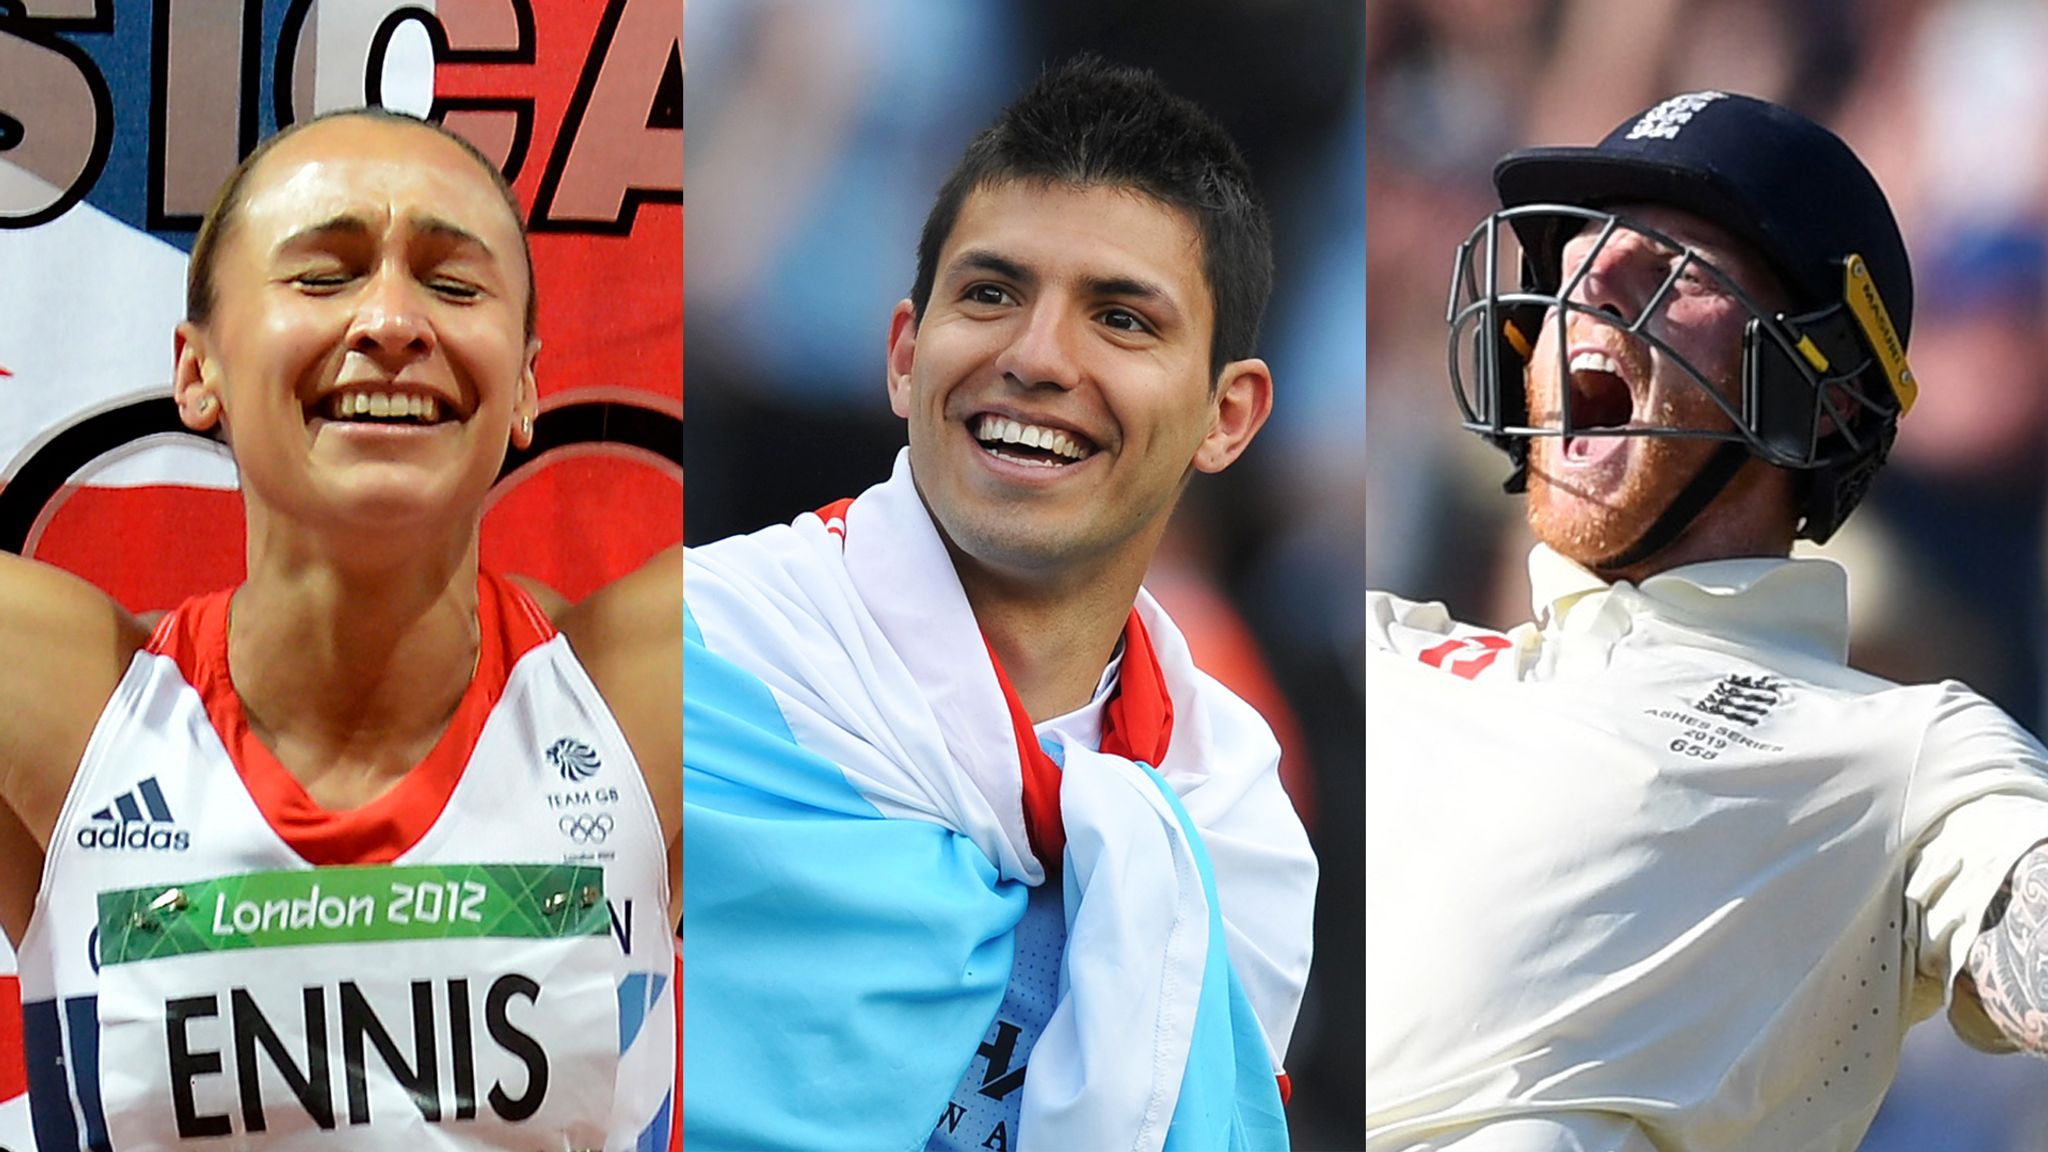 Greatest sports moments of the decade: Vote now in Sky Sports poll